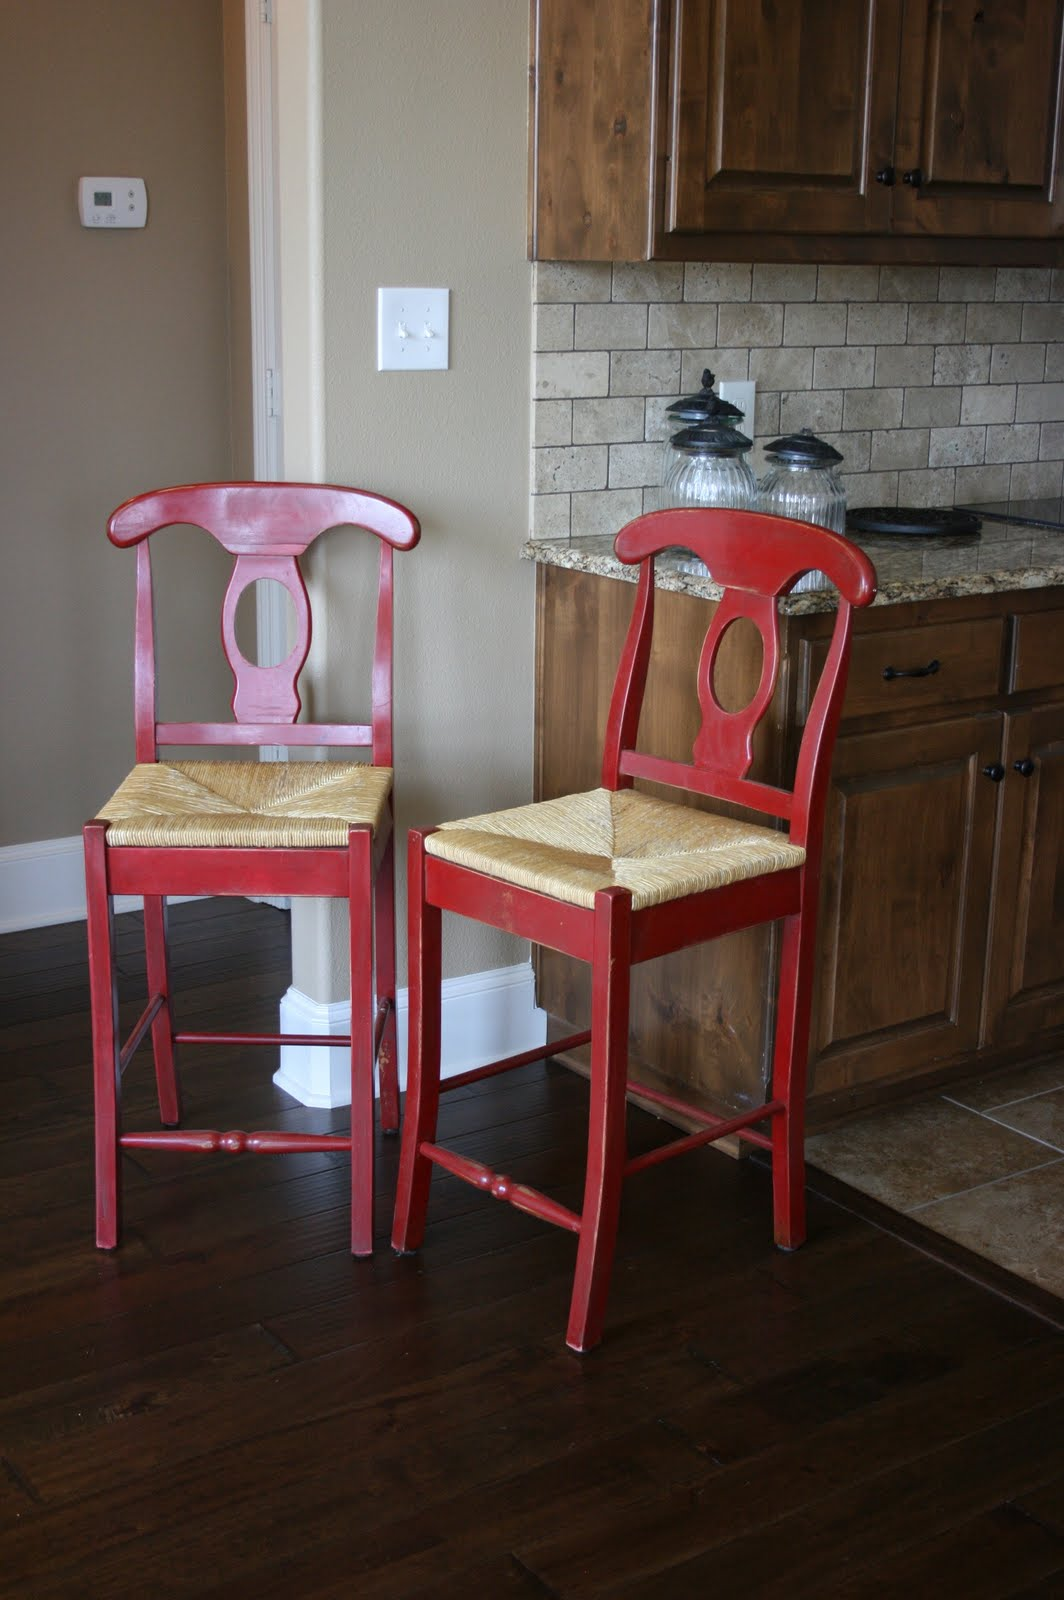 Pottery Barn Kitchen Stools amp Napoleon Pottery Barn Style  : barst from islam-shia.org size 1064 x 1600 jpeg 144kB